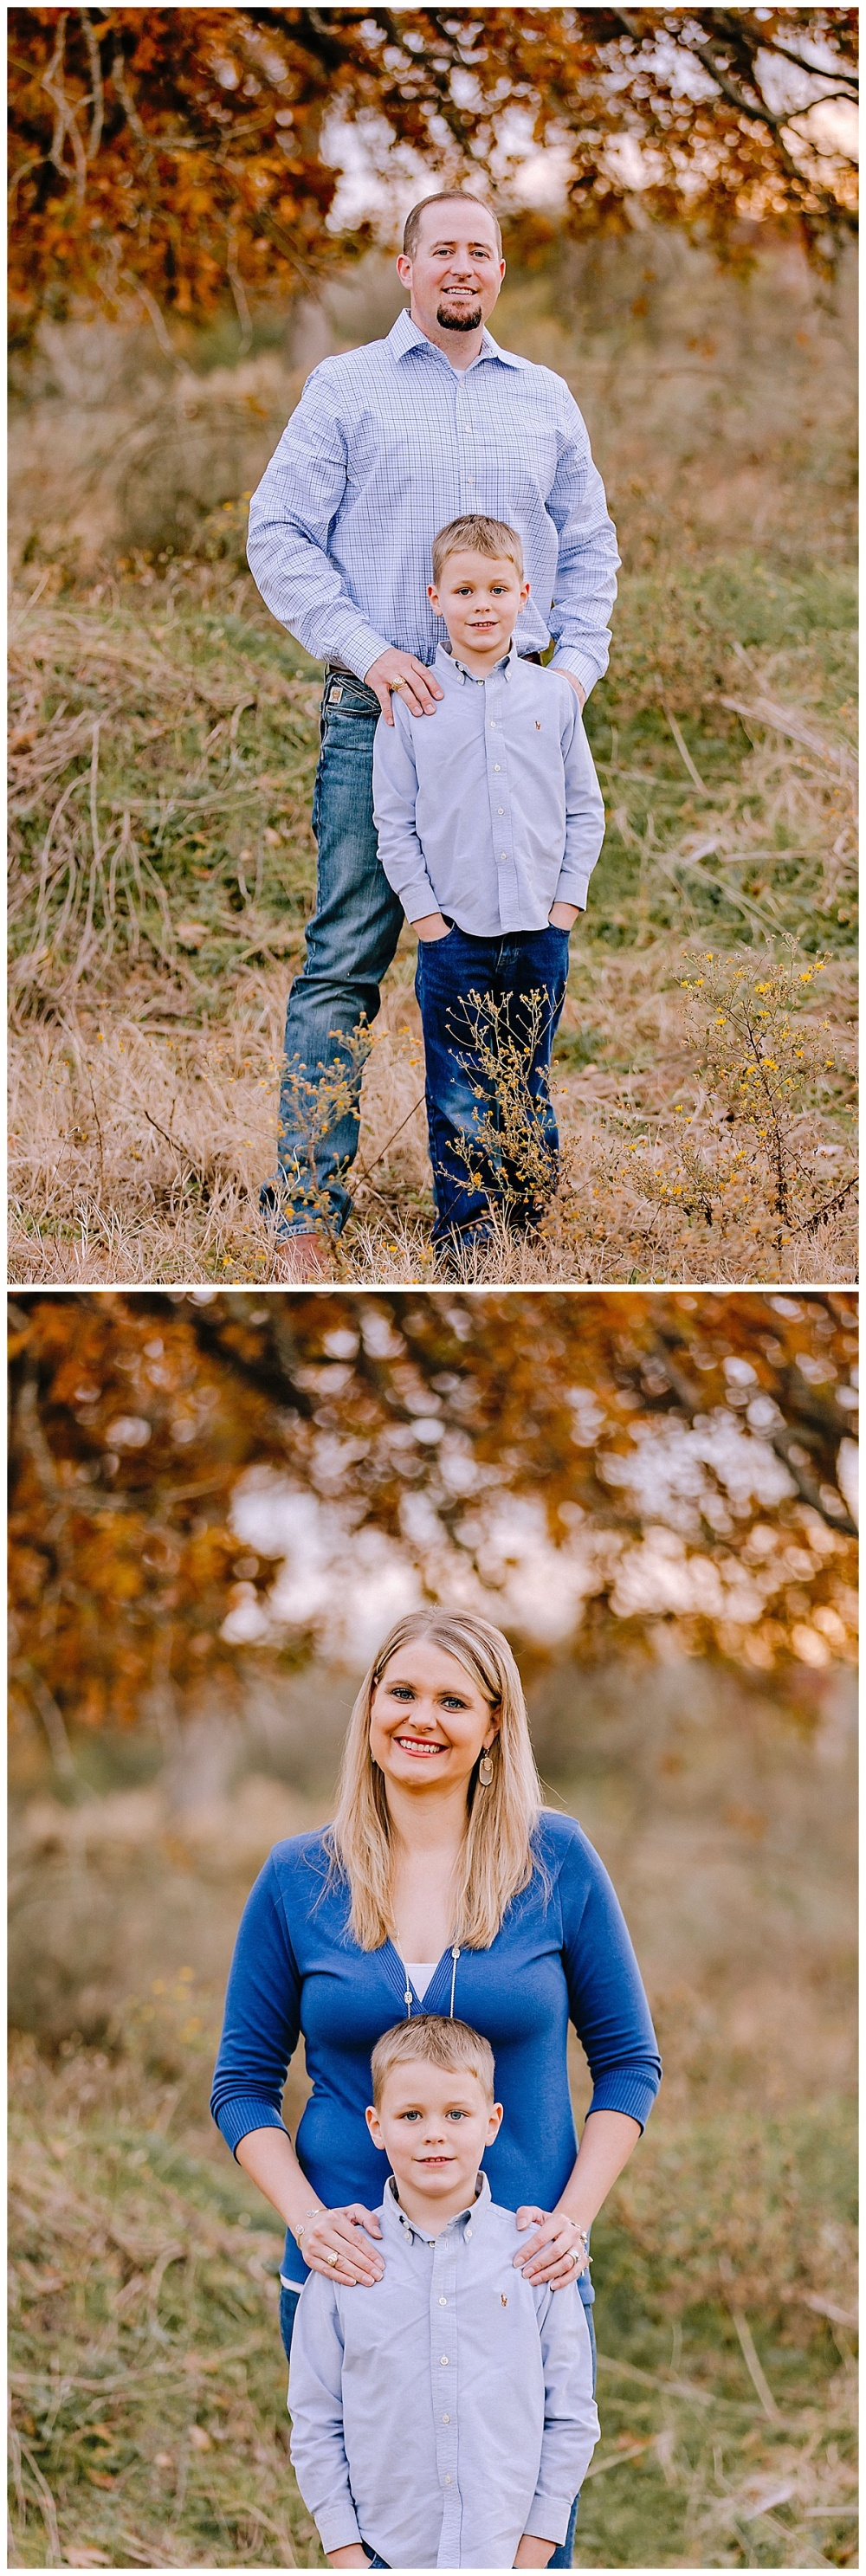 Family-Photographer-La-Vernia-Texas-LV-C-of-C-Hall-Fall-Photos-Brothers-Carly-Barton-Photography_0009.jpg